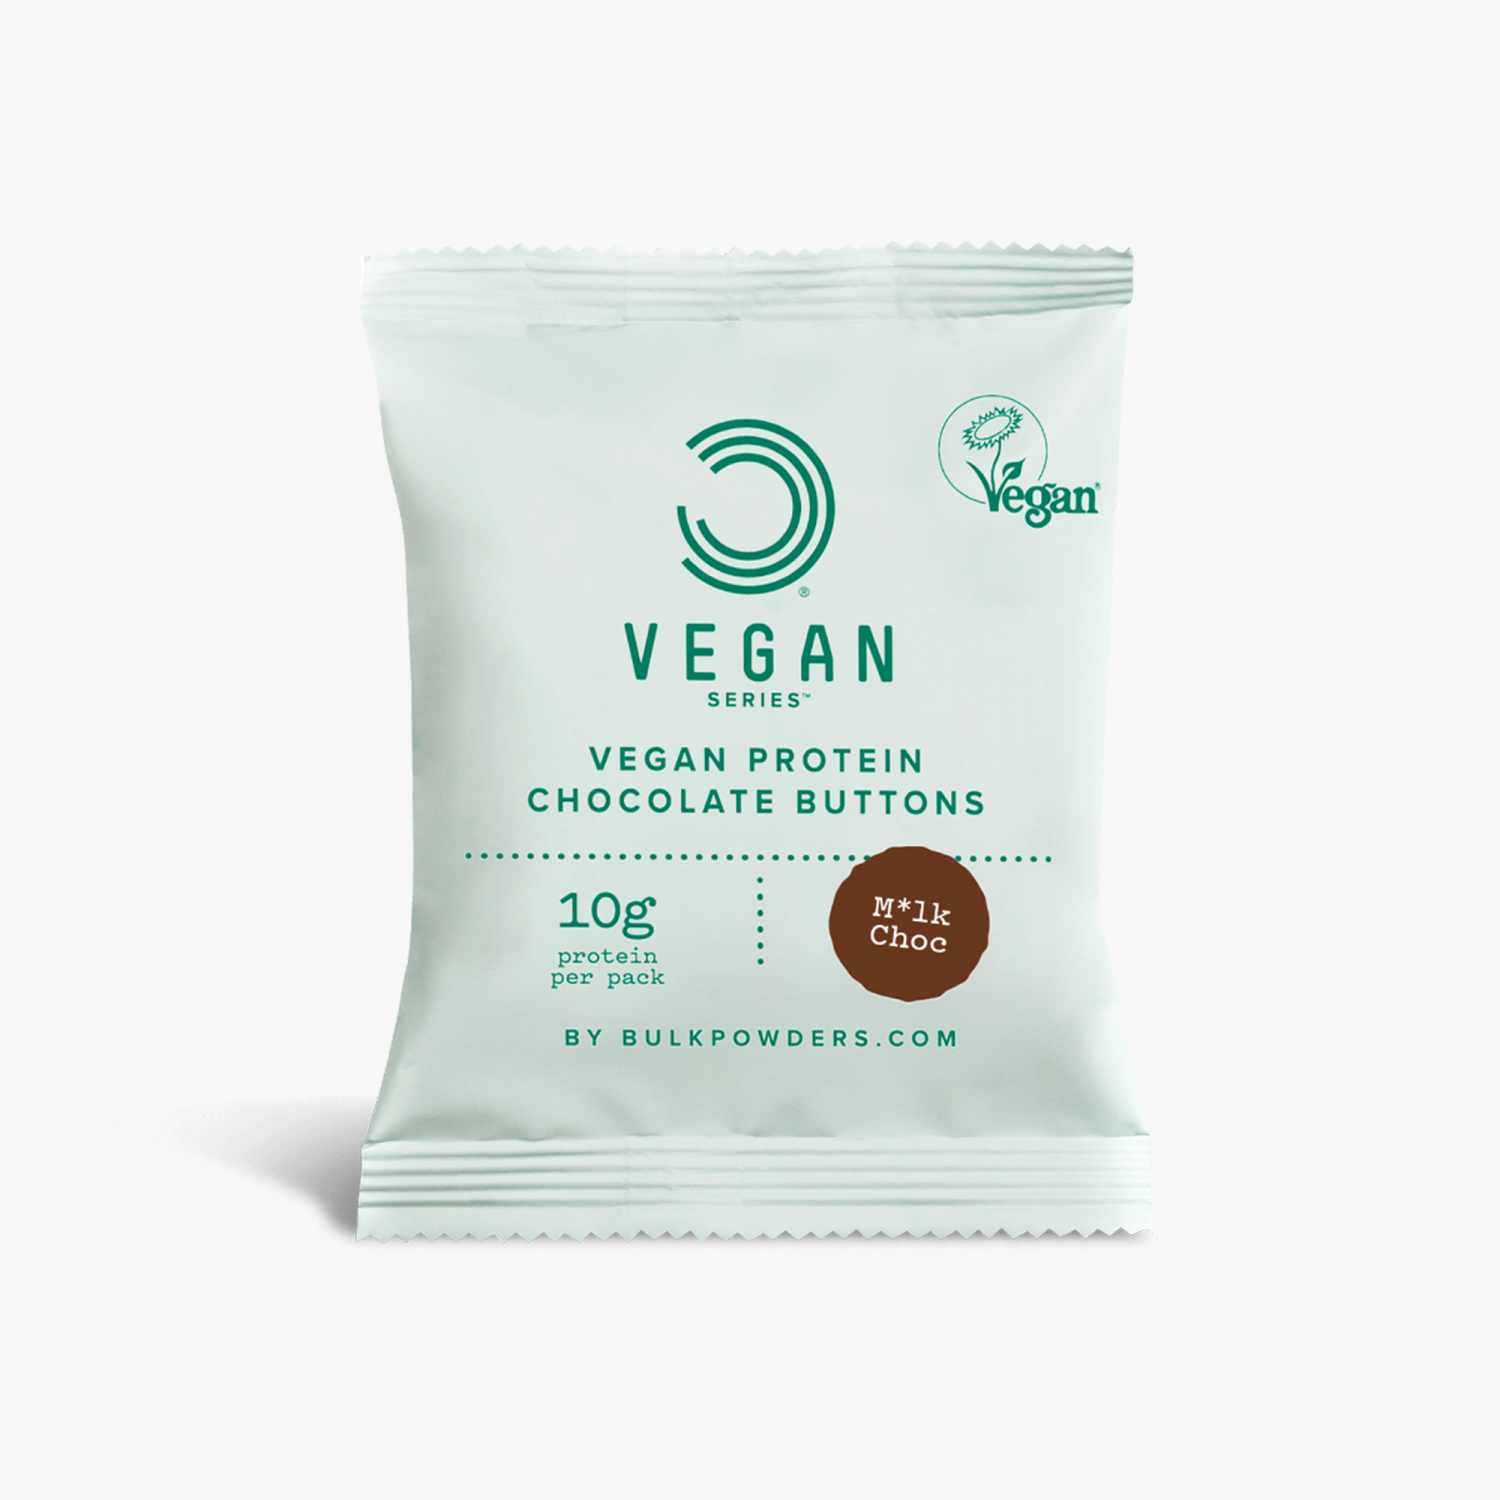 Vegan Protein Chocolate Buttons